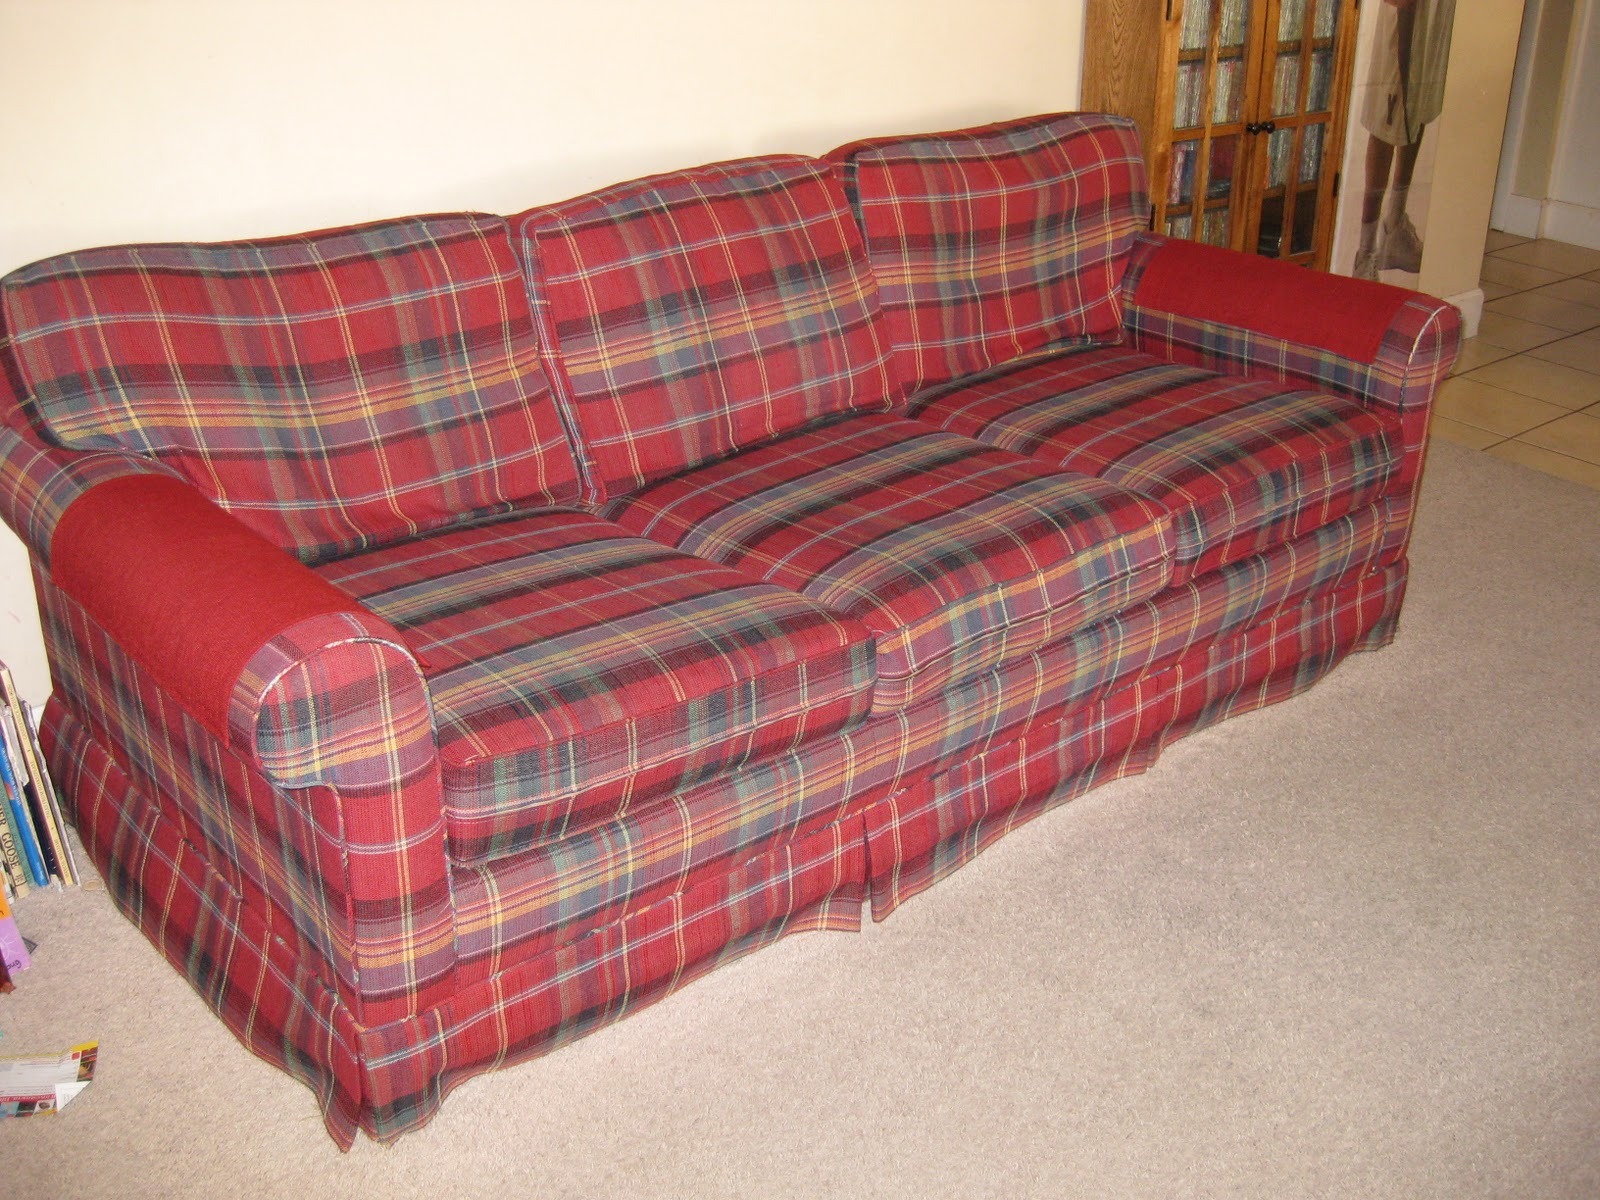 Old plaid couch Slipcovers by Shelley